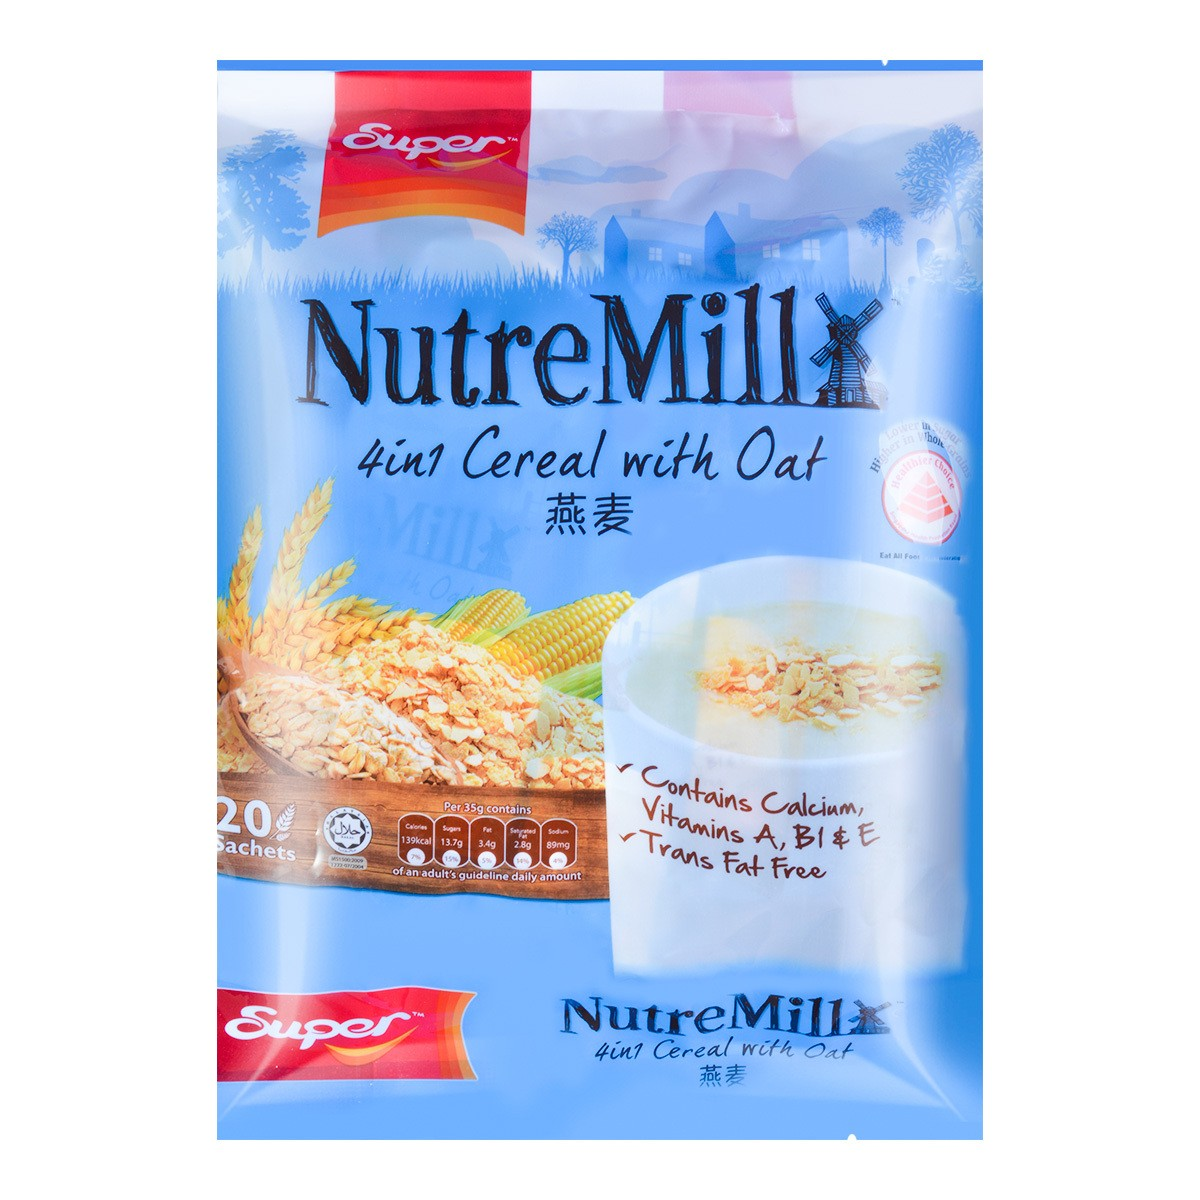 SUPER 4in1 Cereal with Oat 20sachets